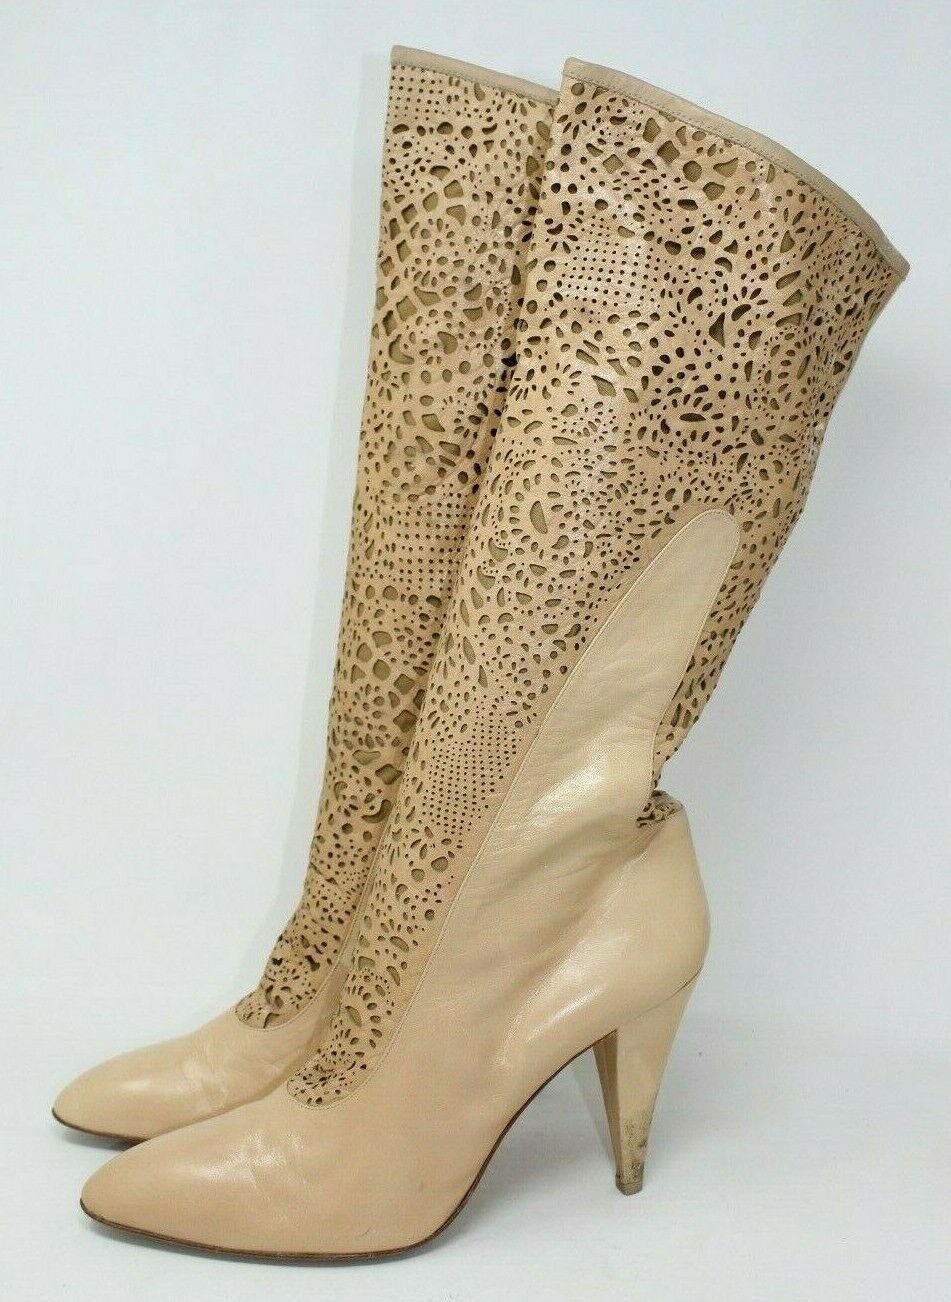 BCBGMAXAZRIA Leather Laser Cut Western Boot in Tan - 11 US